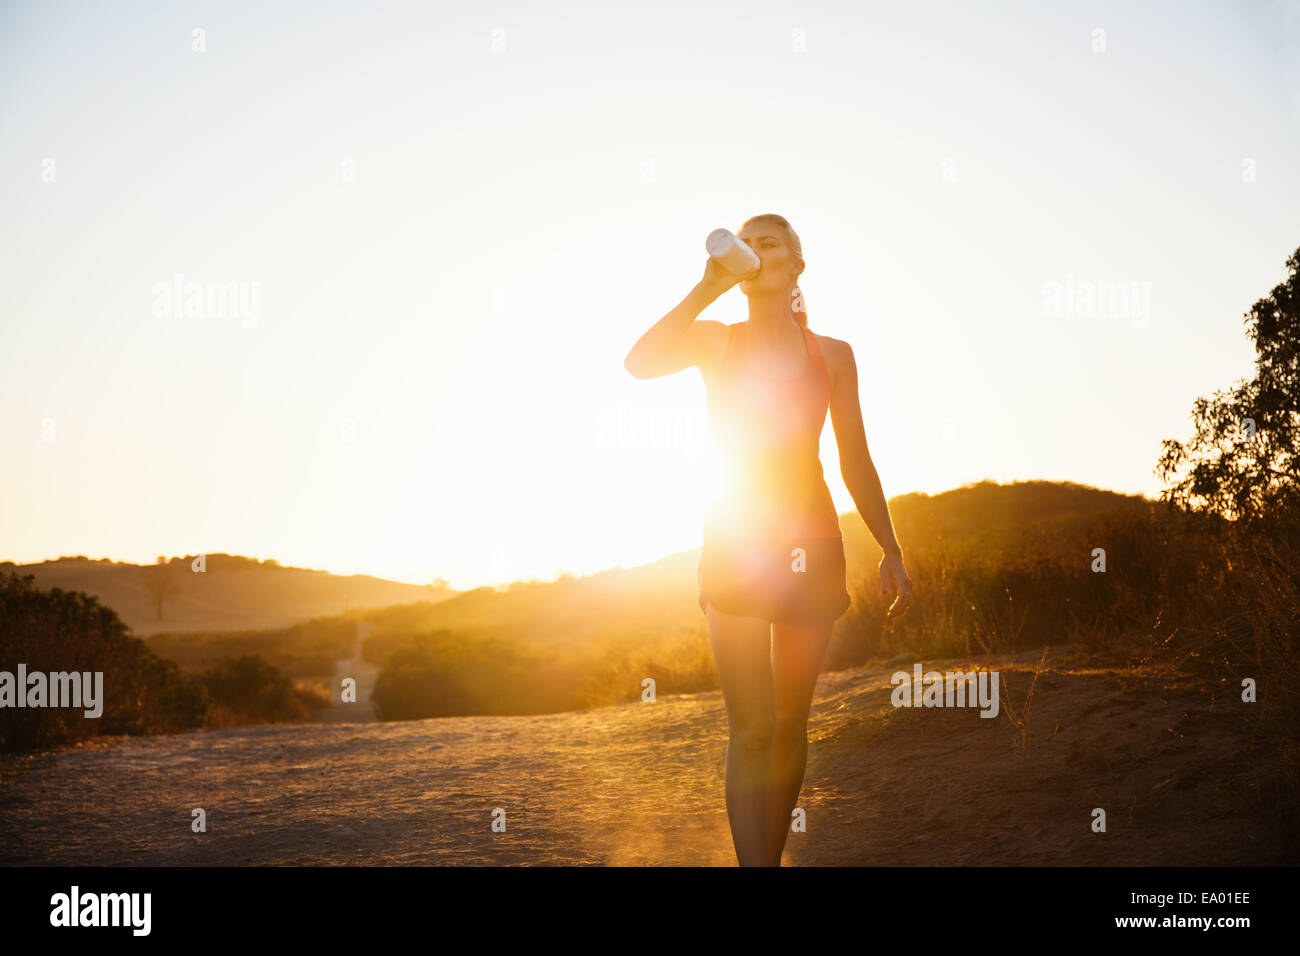 Female jogger drinking in sunlight, Poway, CA, USA - Stock Image